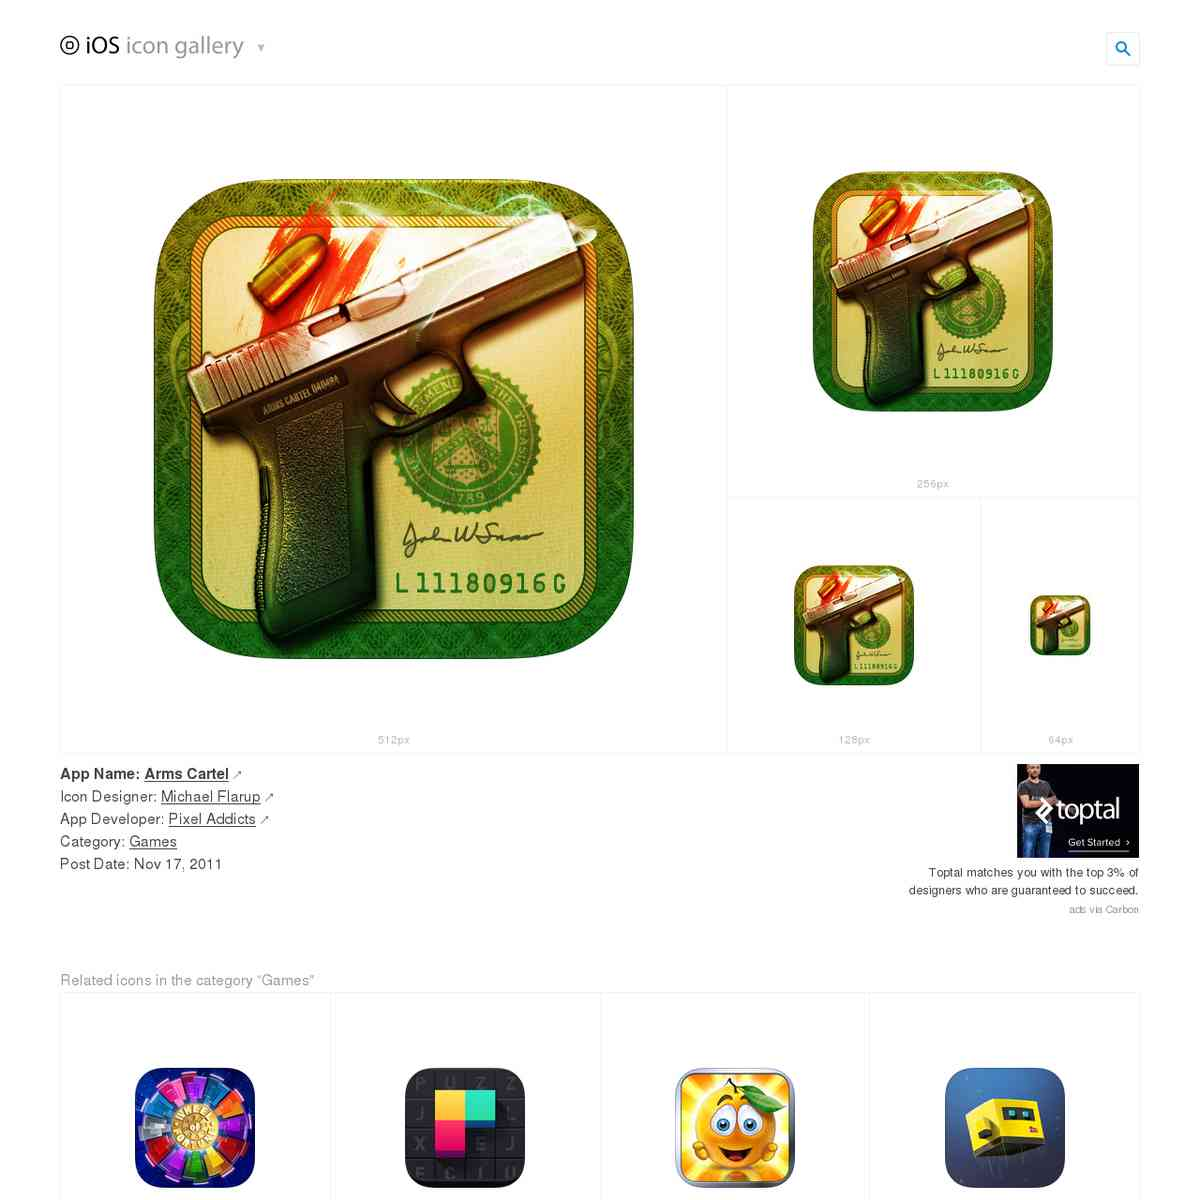 iosicongallery.com/games/arms-cartel/